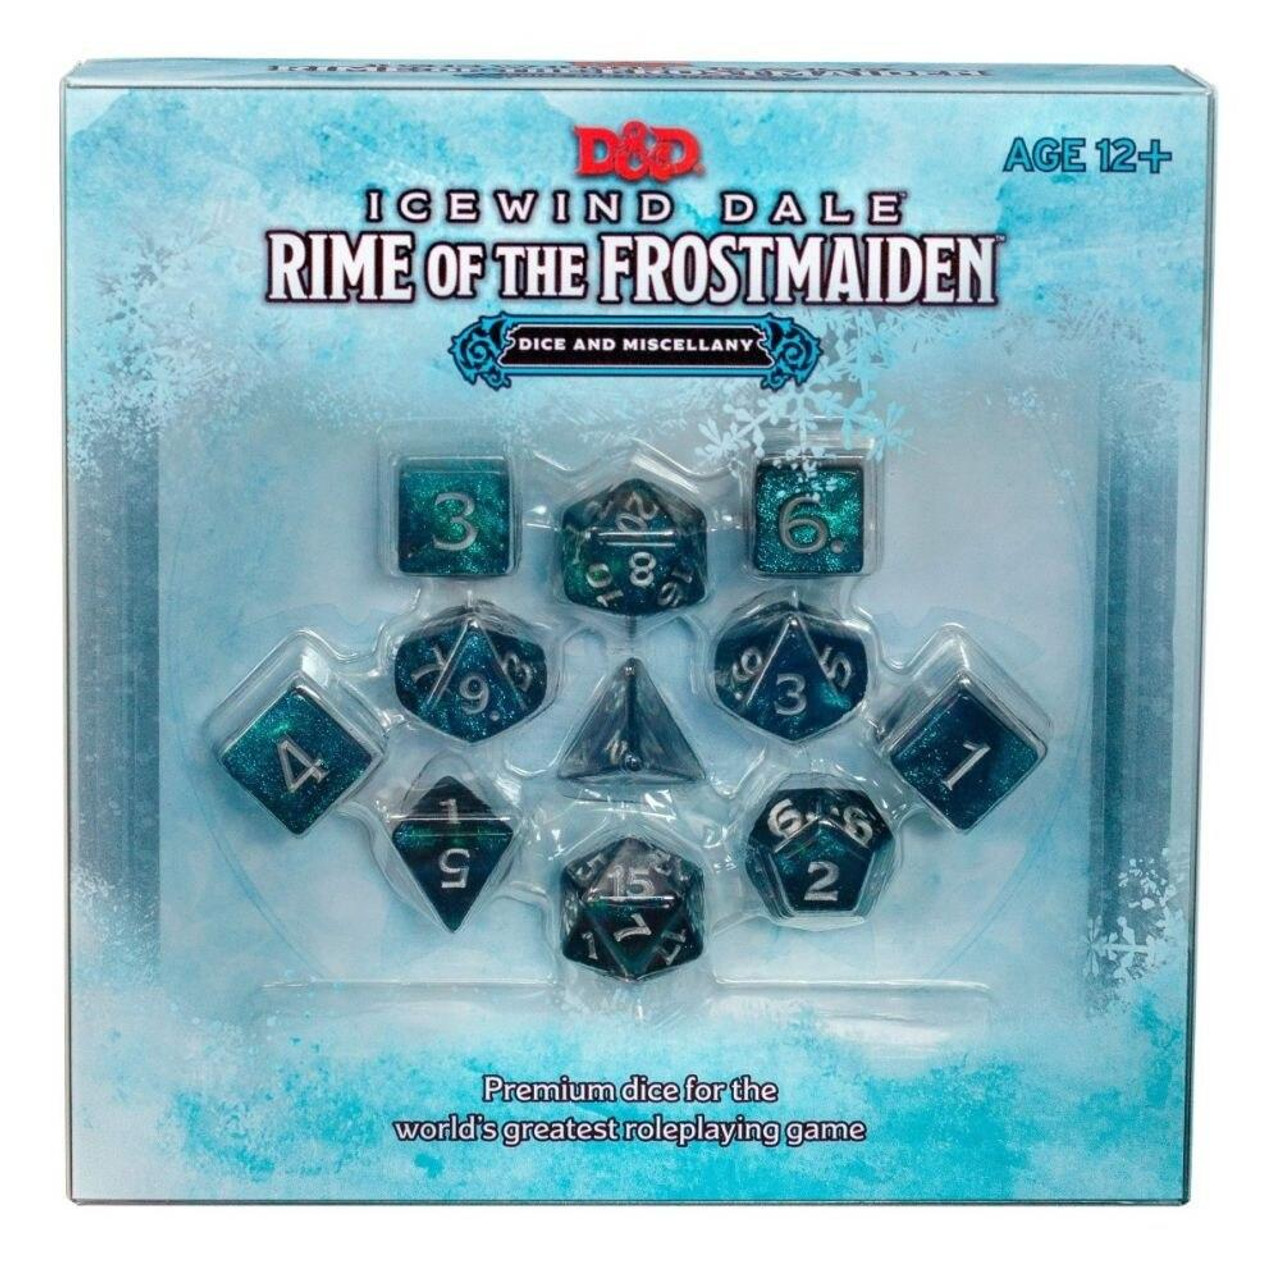 DandD Icewind Dale Rime of the Frostmaiden Dice and Miscellany